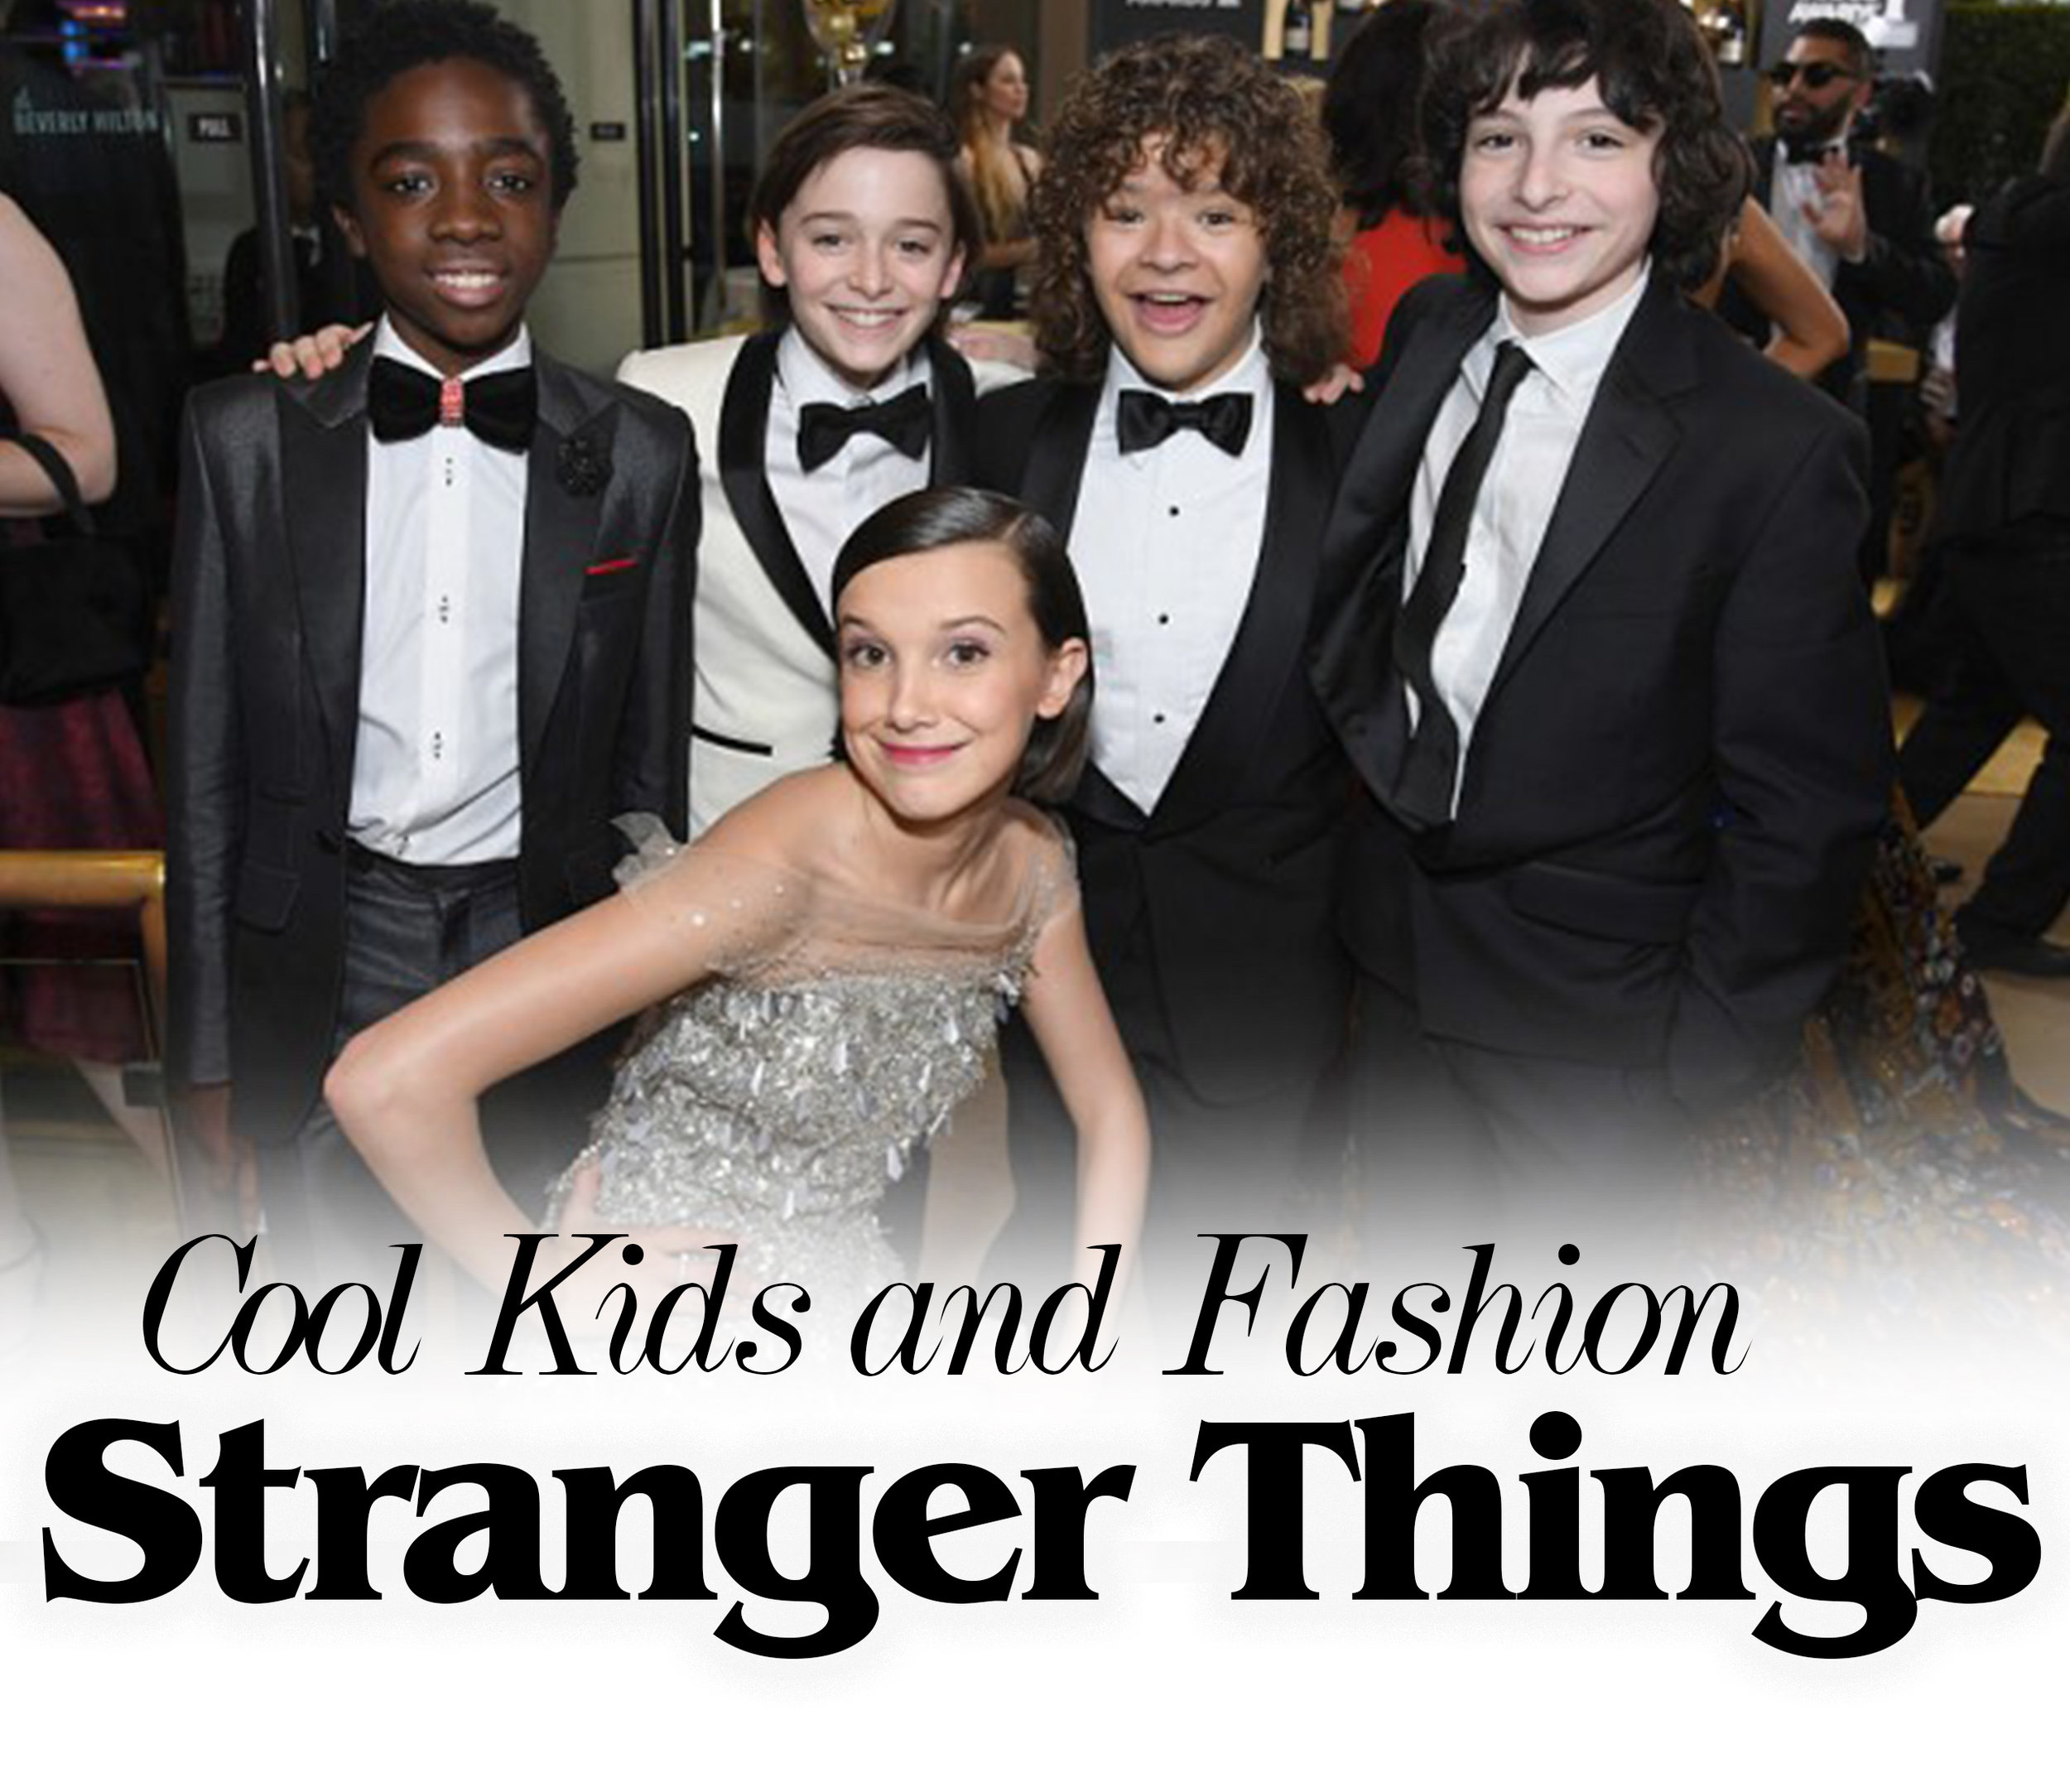 CoolKids_and_Fashion_Stranger_Things.jpg